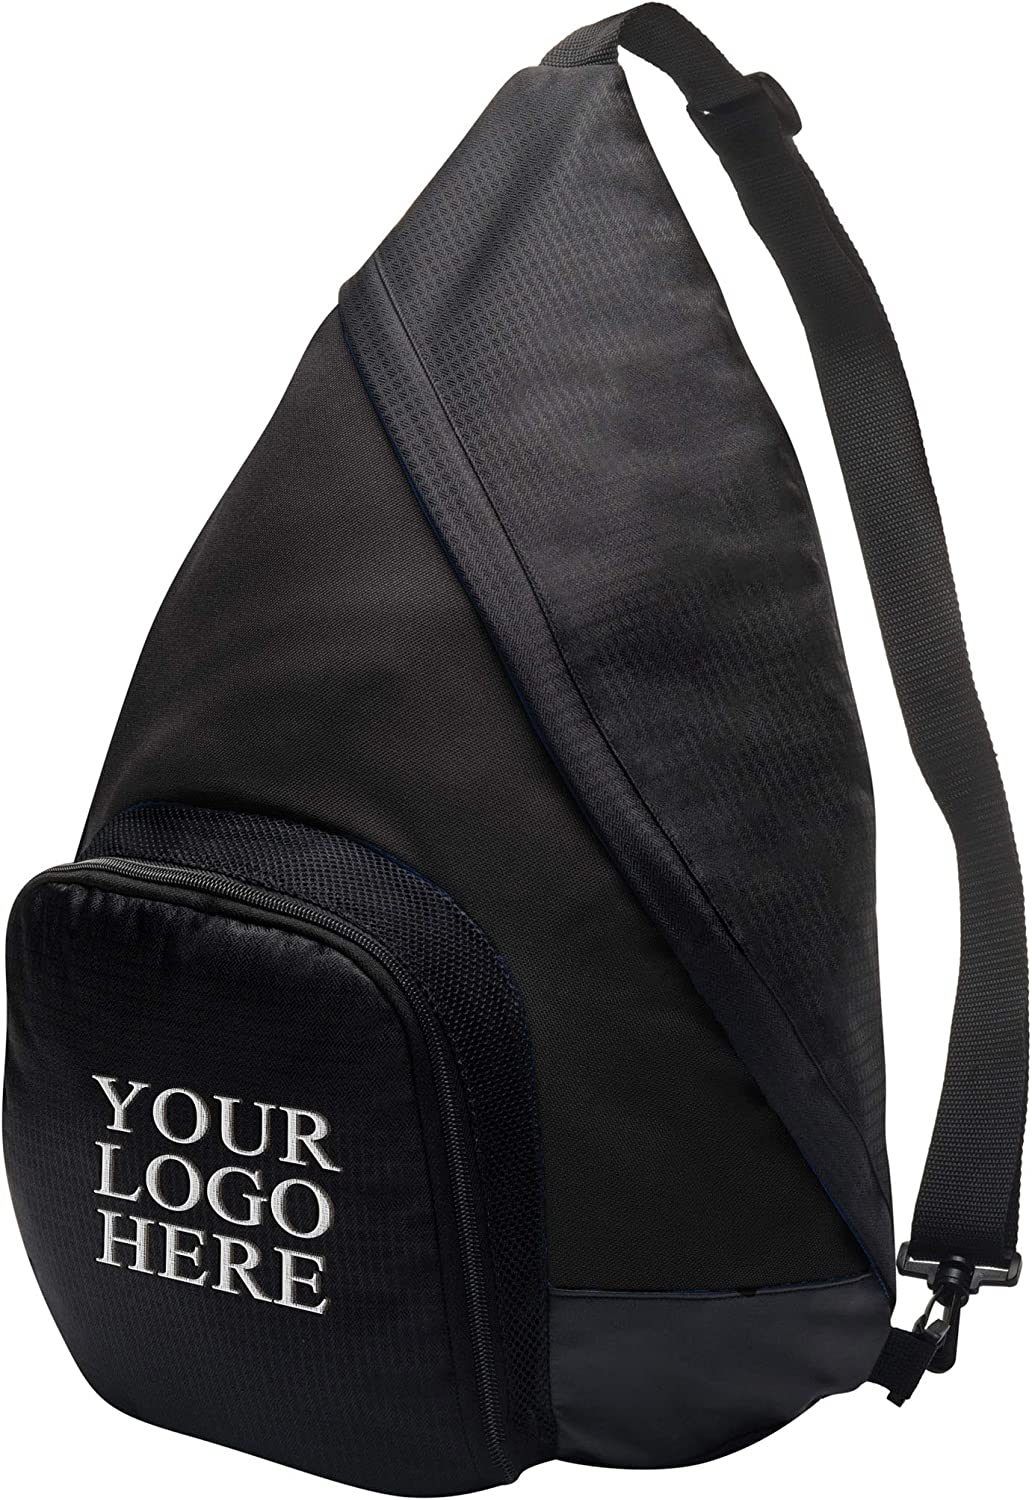 Personalized Custom Crossbody Sling Backpack for Women Men – Add Your Embroidered Name Monogram Logo